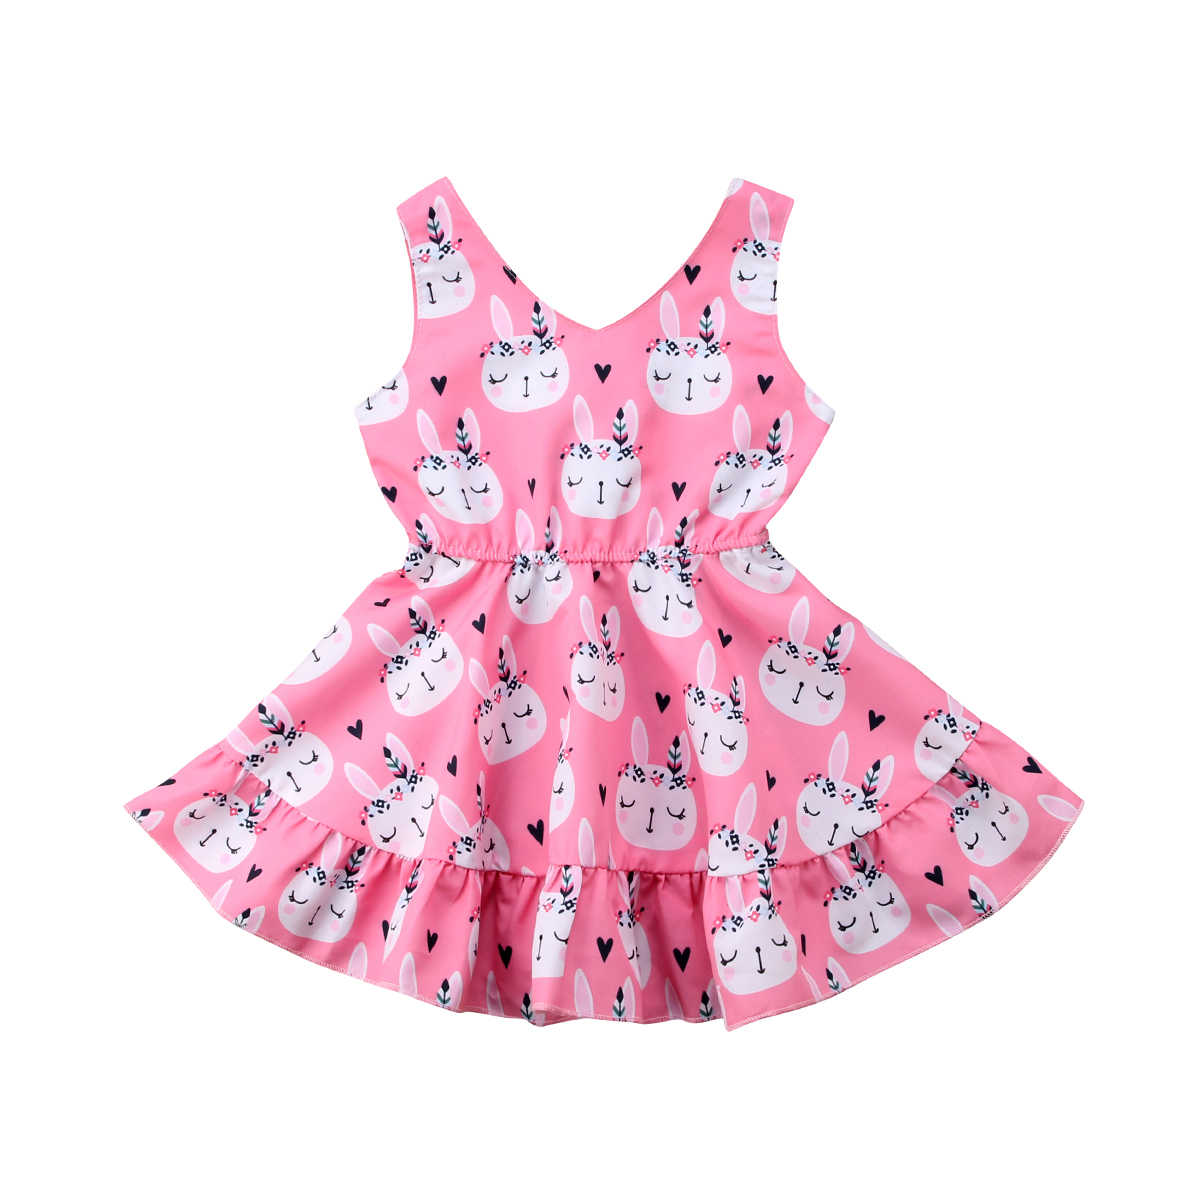 8cccbe3a6146 Detail Feedback Questions about 2018 Infant Toddler Baby Girl ...